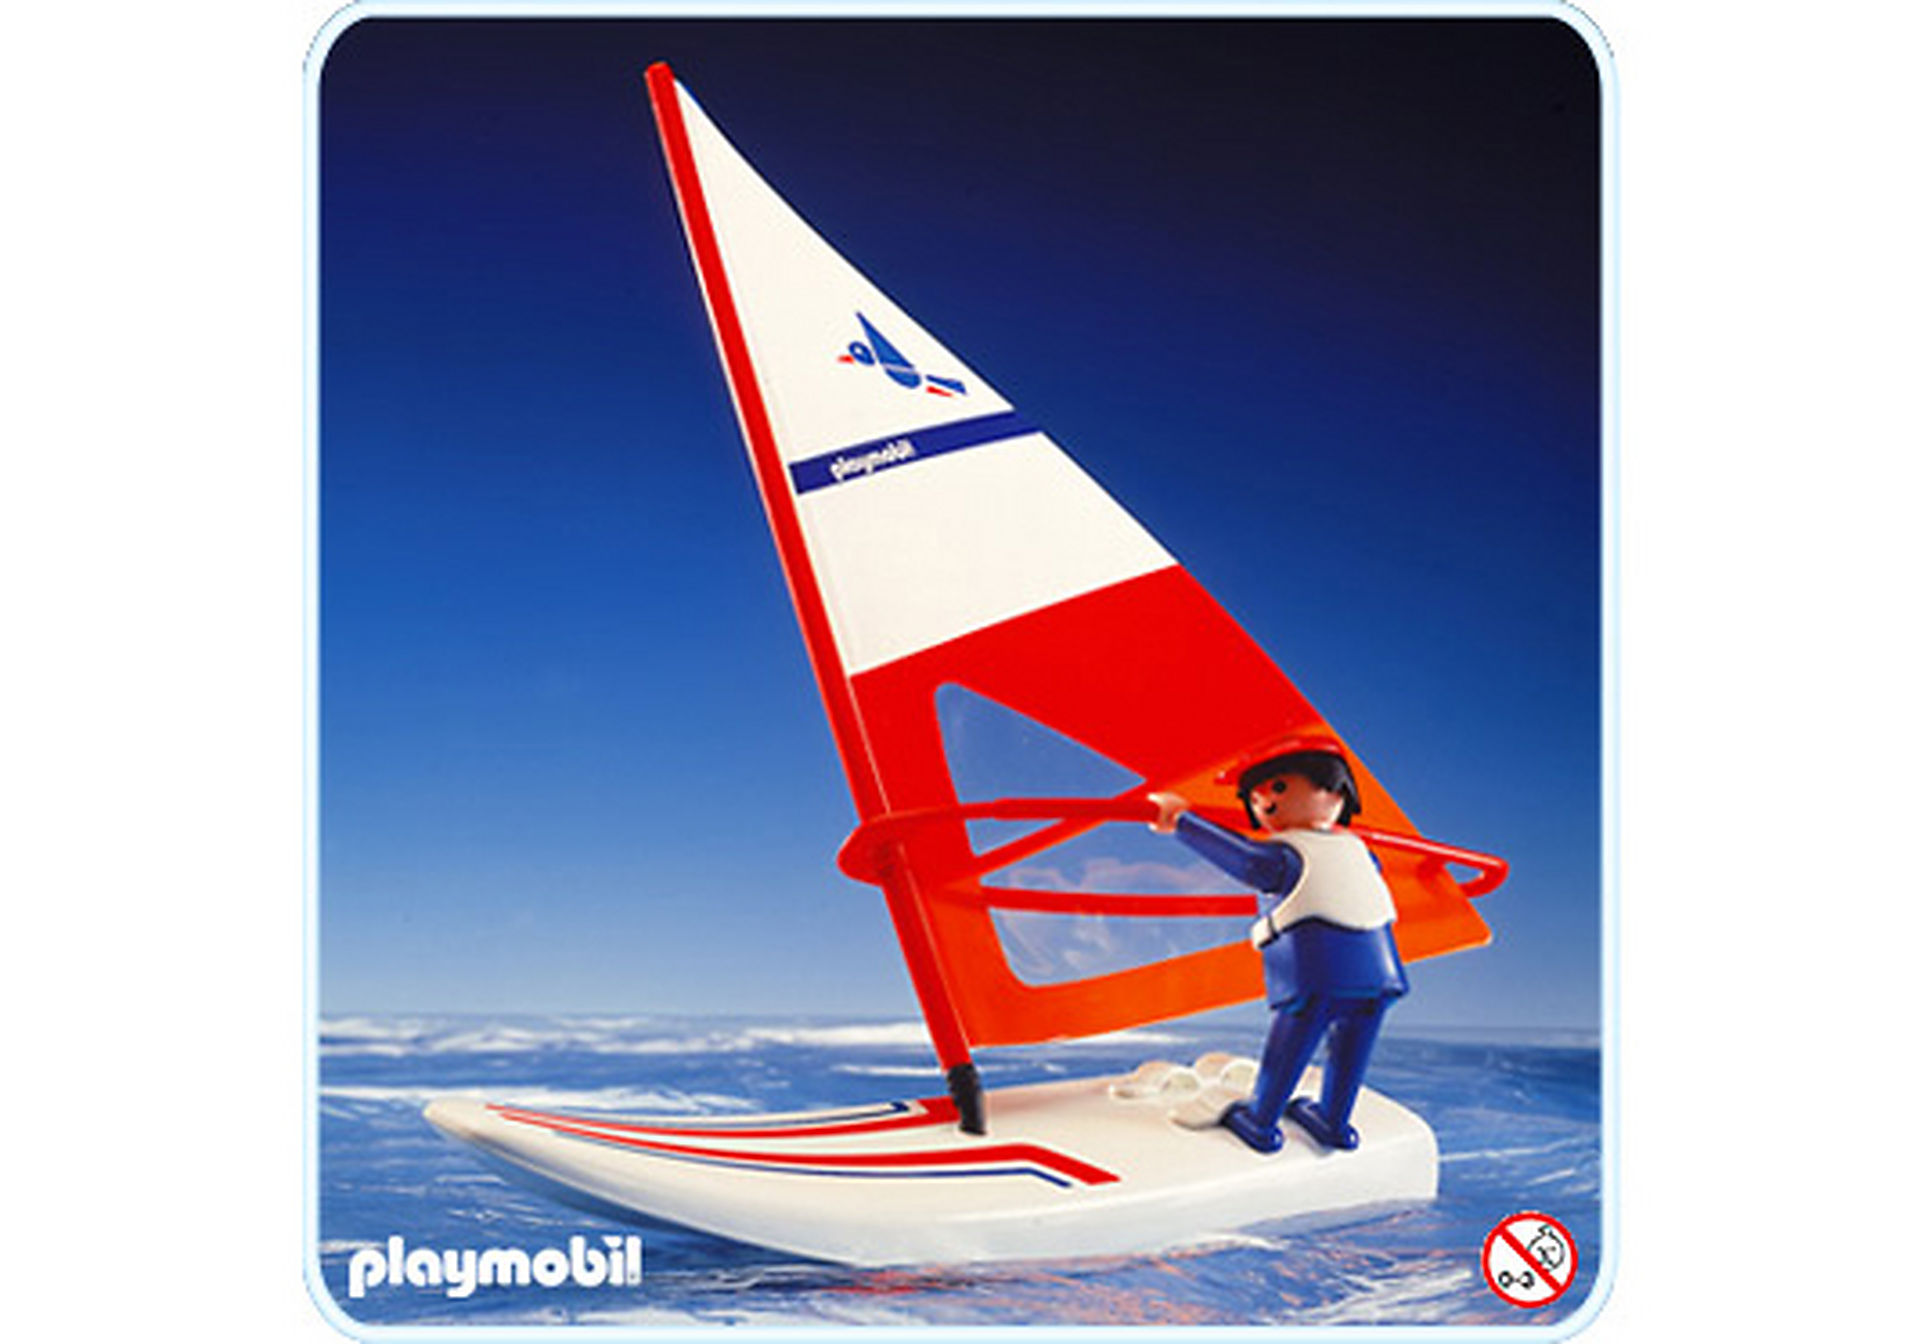 http://media.playmobil.com/i/playmobil/3584-A_product_detail/Windsurfer